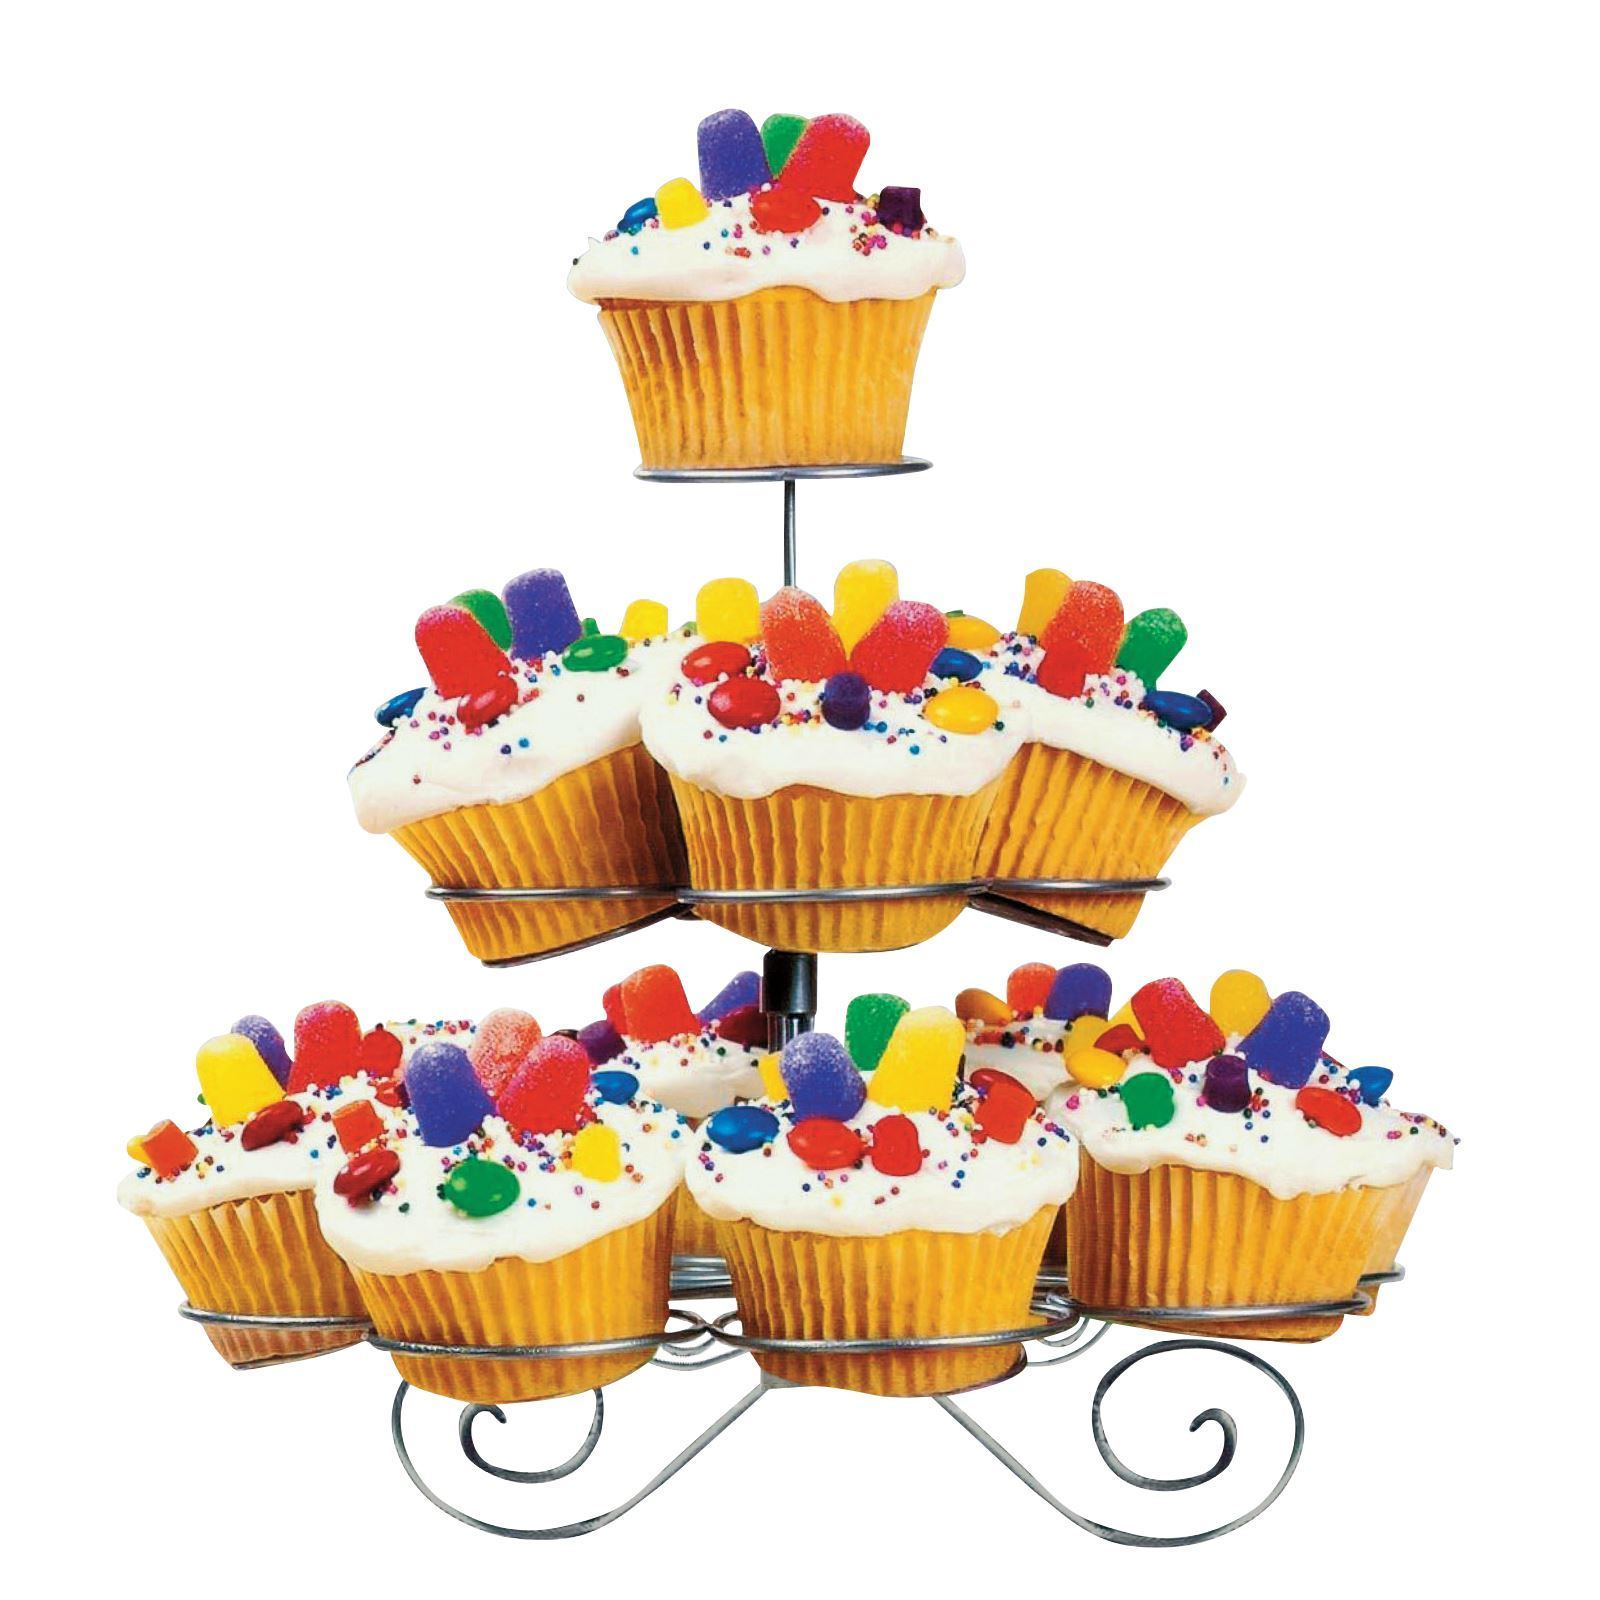 3 Tier 13 Mini Cupcake Stand Shopmonk